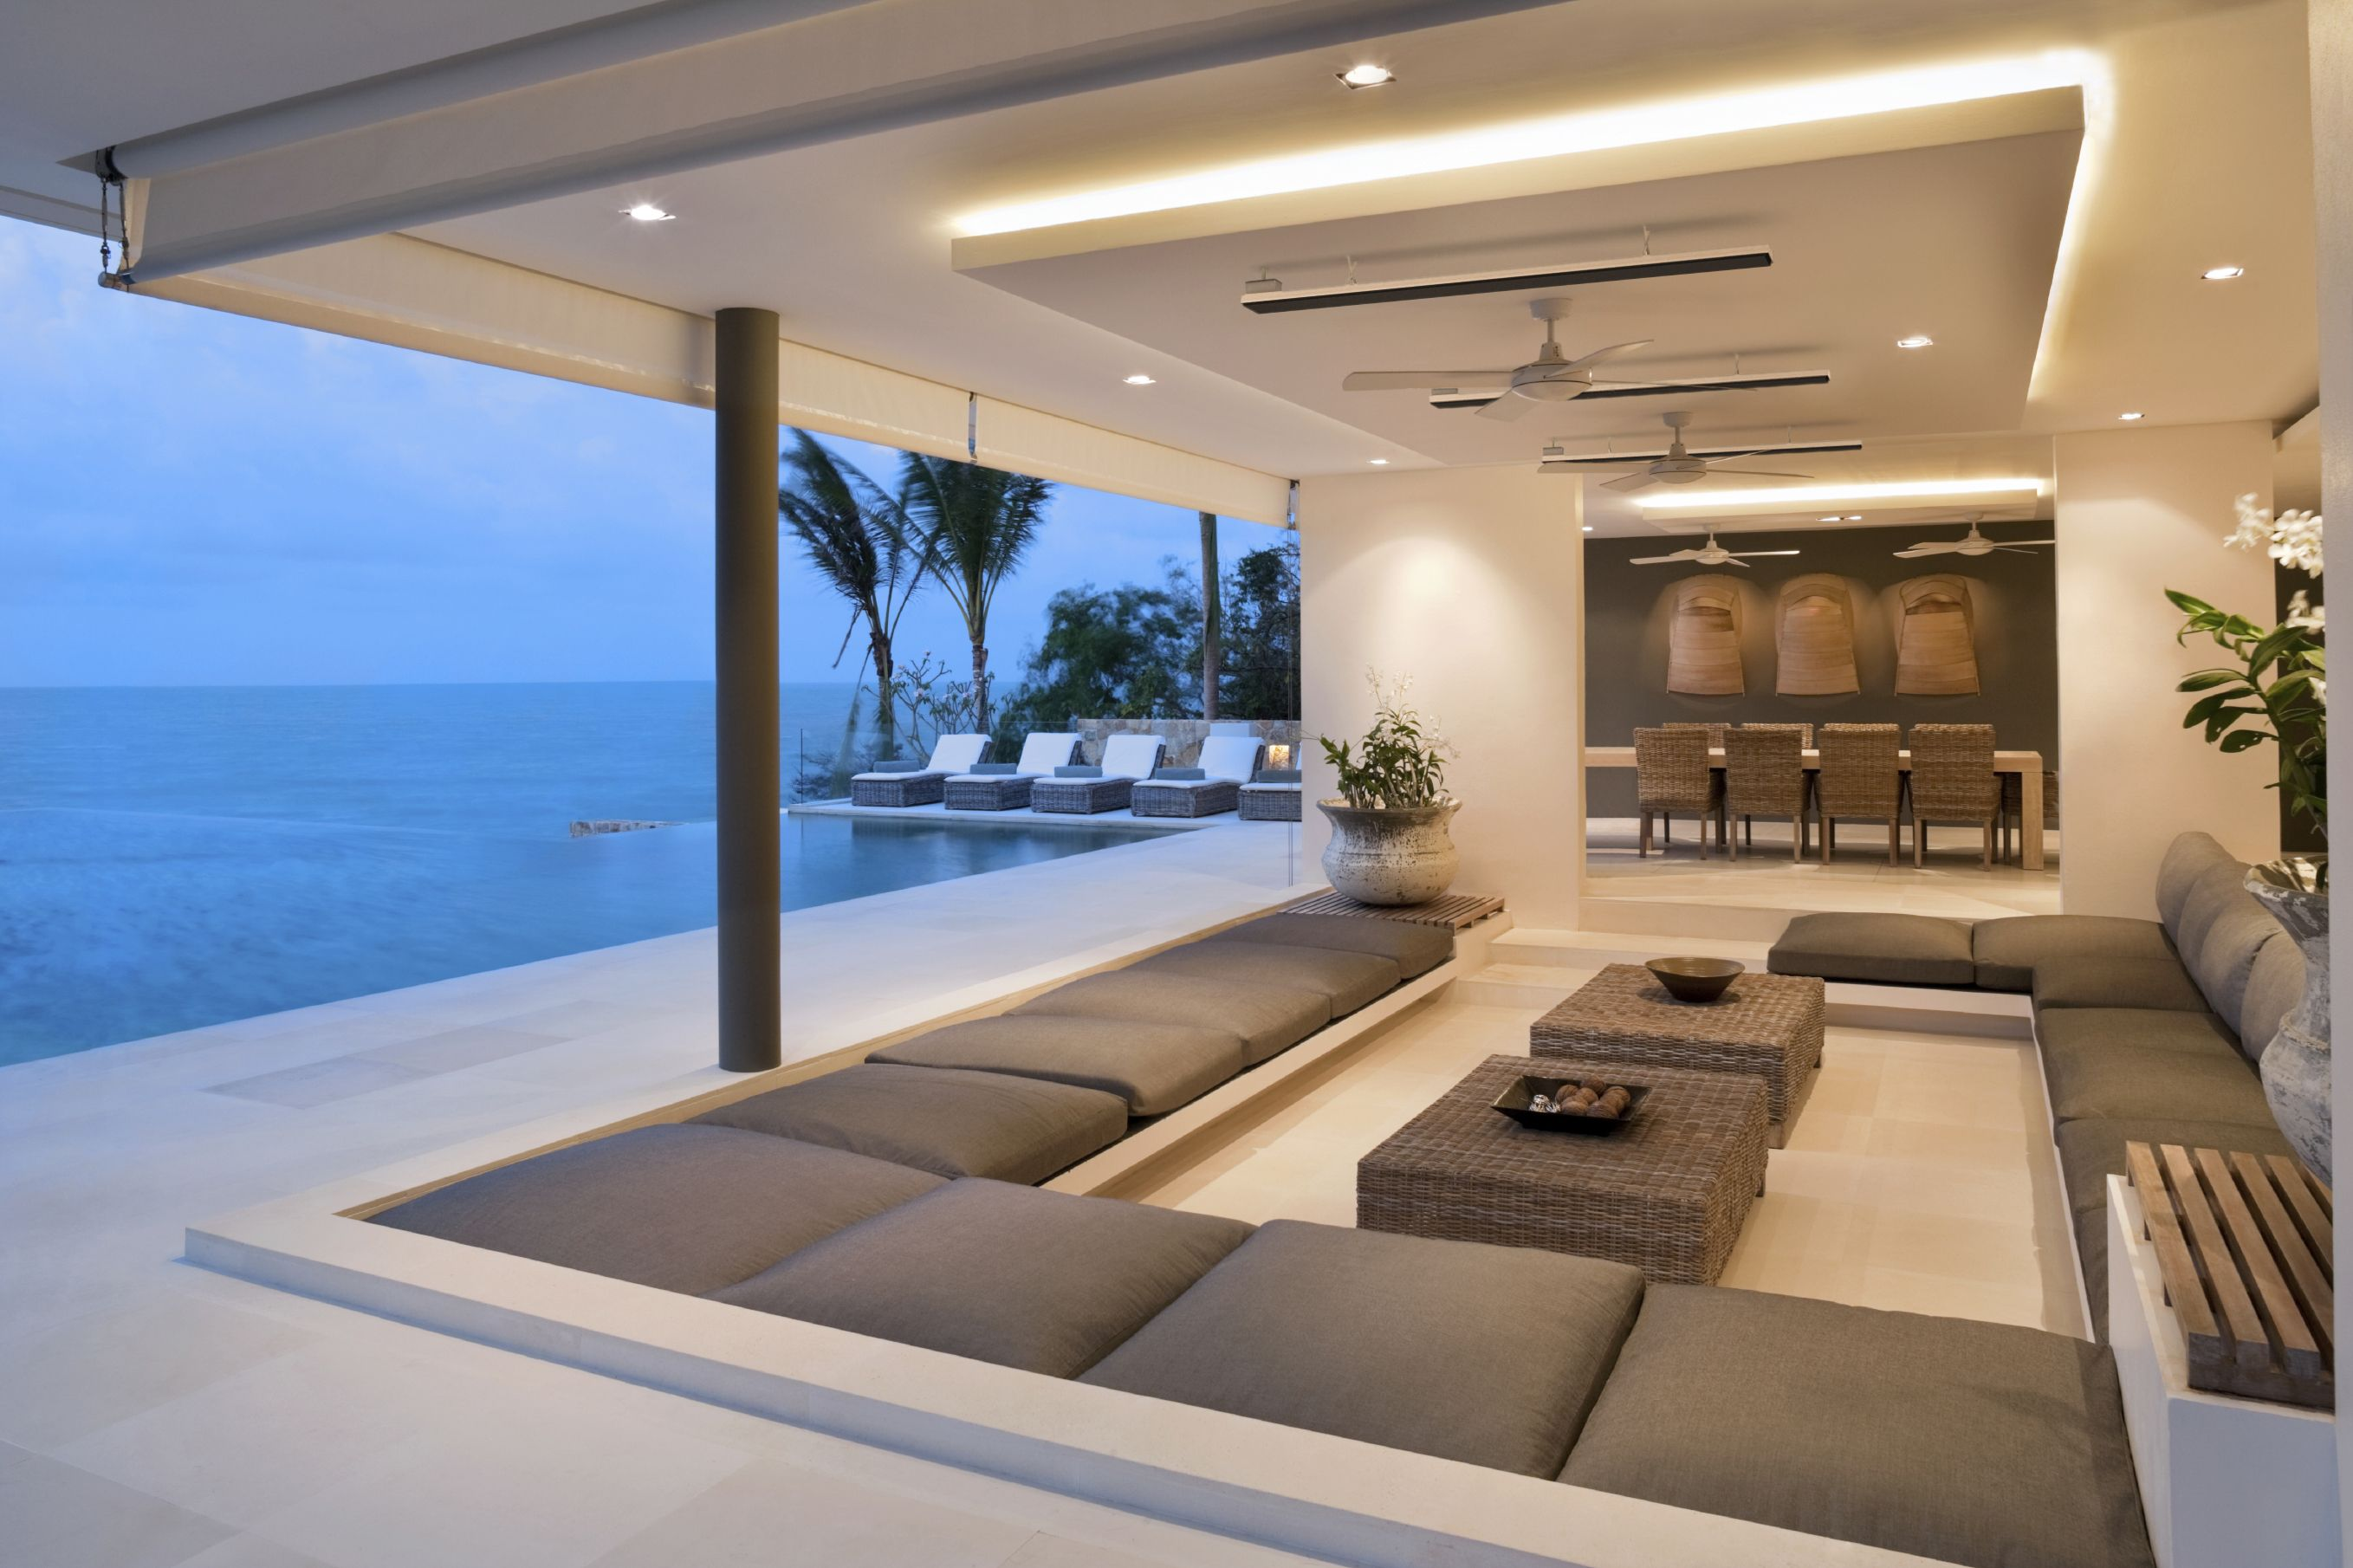 outdoor heater patio heater infinity pool outdoor on stunning backyard lighting design decor and remodel ideas sources to understand id=14143